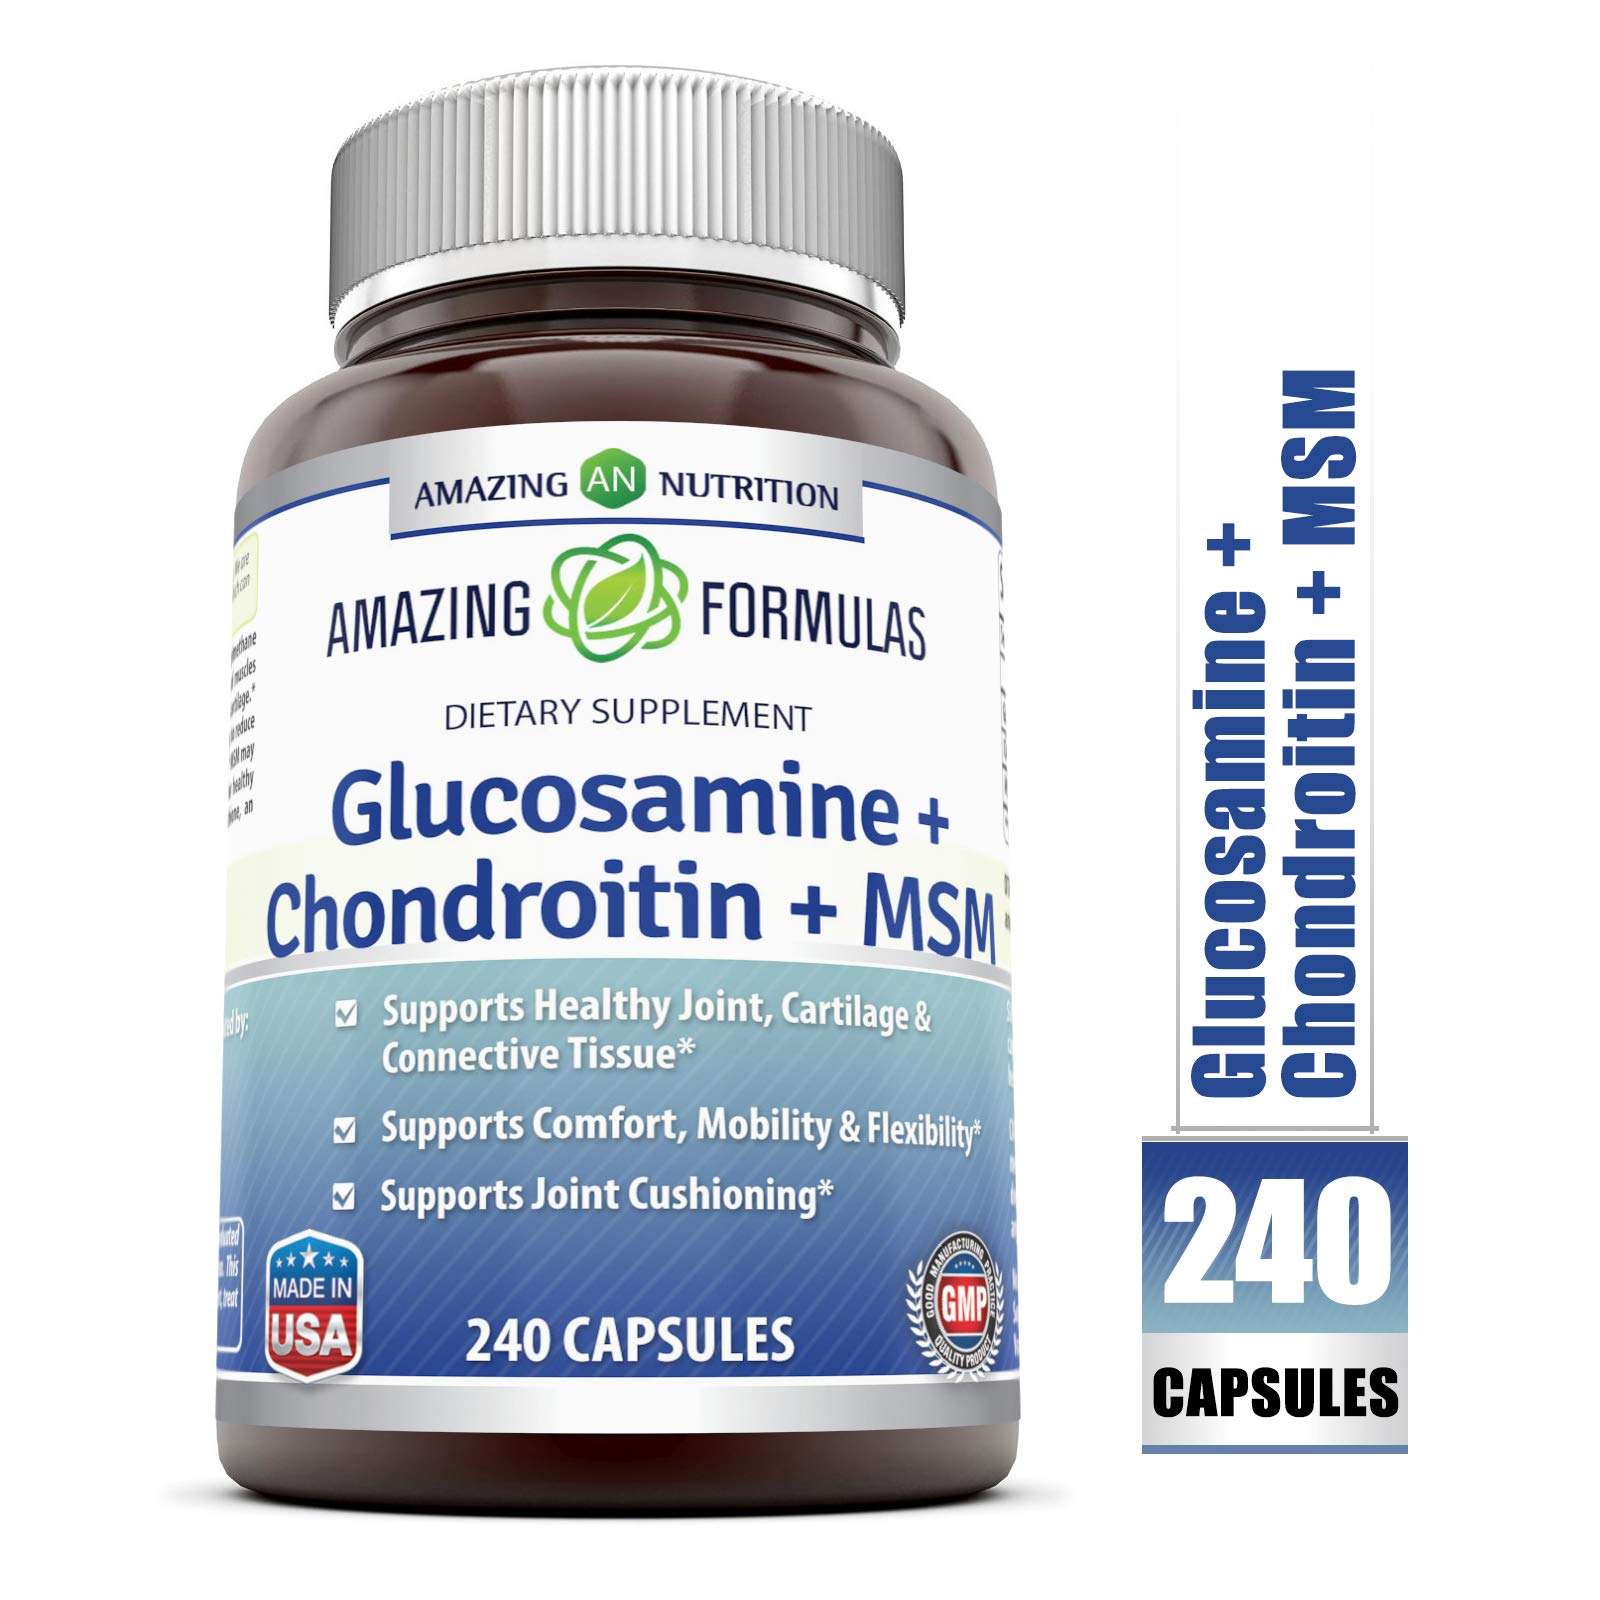 Amazing Formulas Glucosamine + Chondroitin + MSM - 240 Capsules - Supports Healthy Joint, Cartilage and Connective Tissue - Promotes Joint Comfort & Flexibility (240 Capsules)